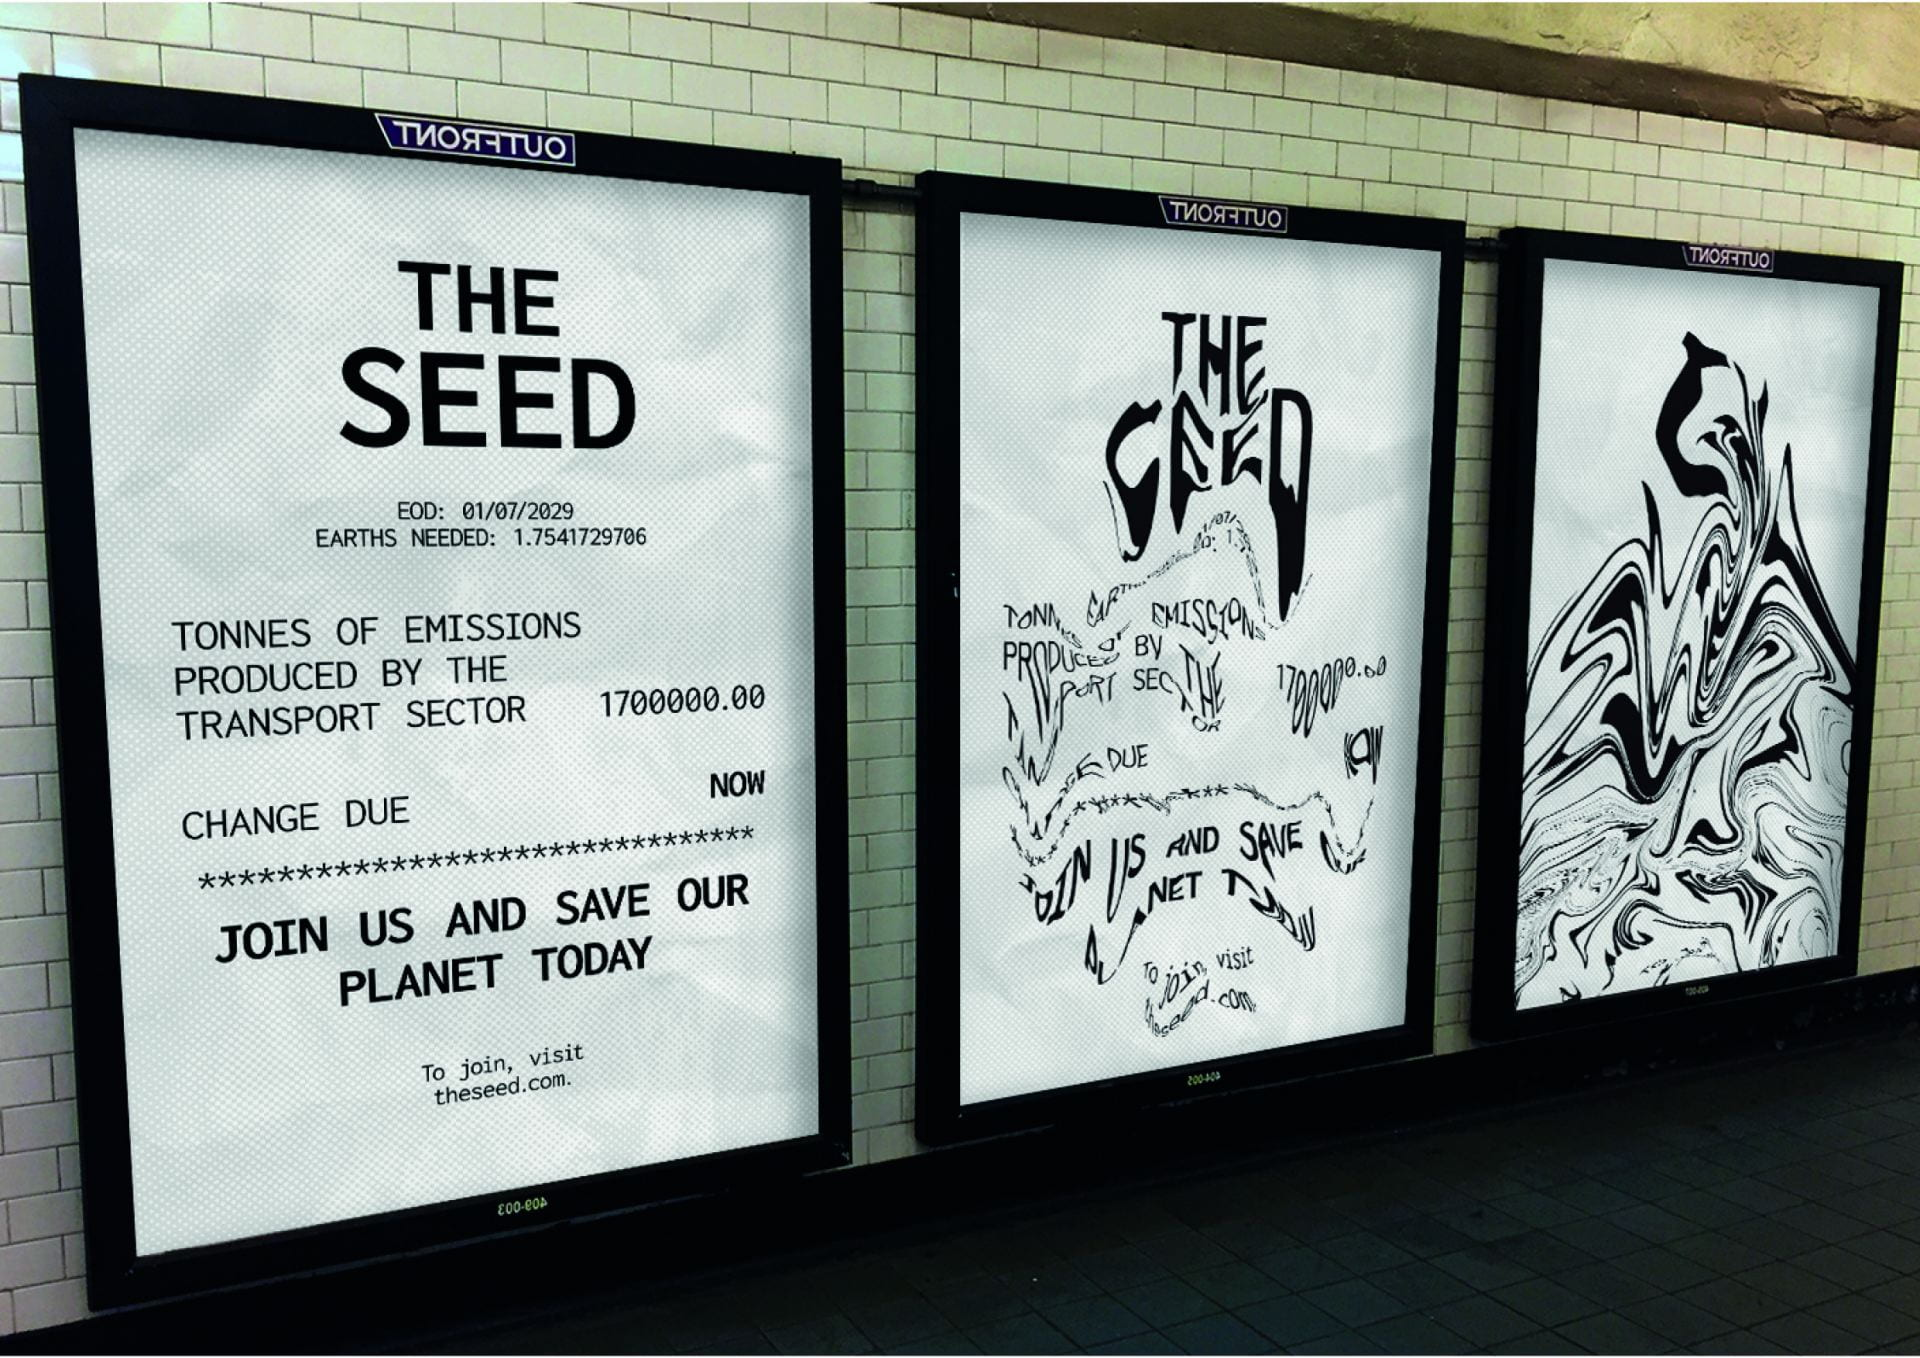 Posters: As you walk past, it portrays the gradual destruction of the planet due to the CO2 levels.